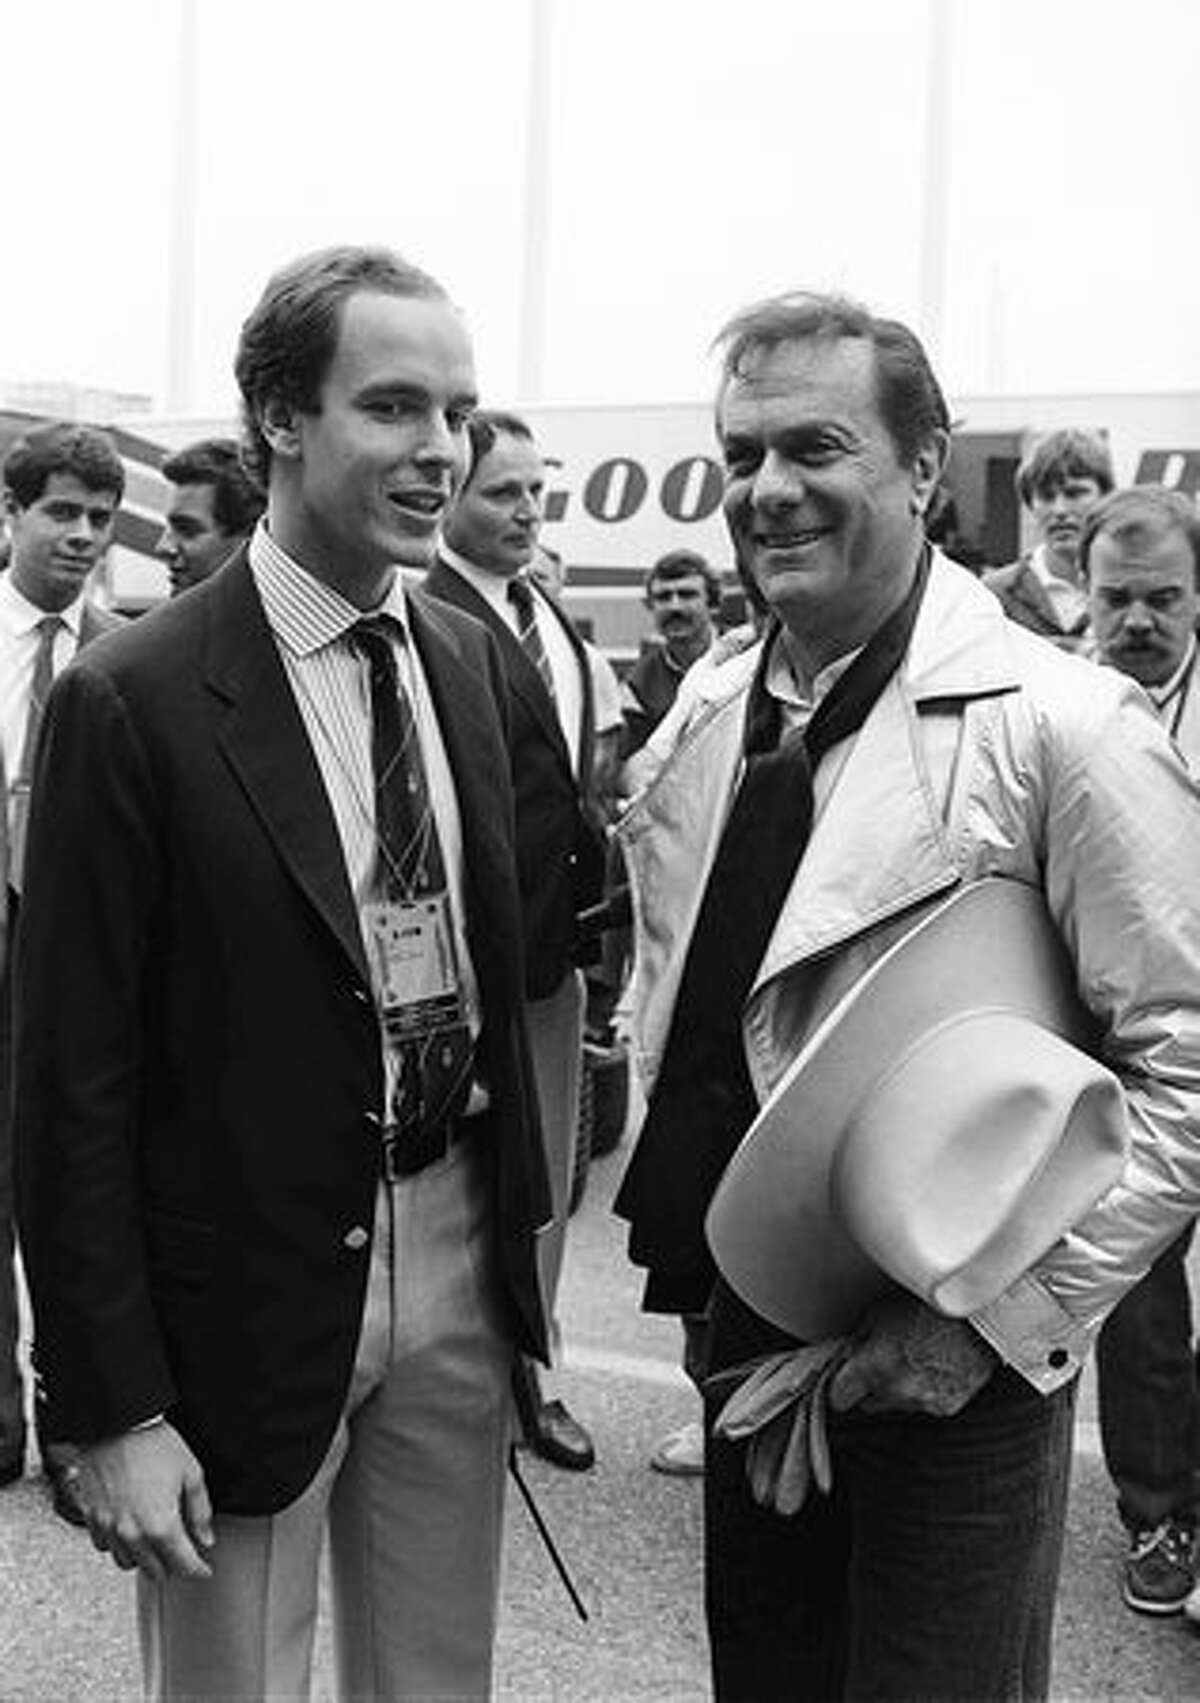 Prince Albert of Monaco chats on May 19, 1985, in Monaco with American actor Tony Curtis, in the pits, during the warm-up, a few hours before the start of the Monaco Formula 1 Grand Prix. (FILM) AFP PHOTO GABRIEL DUVAL